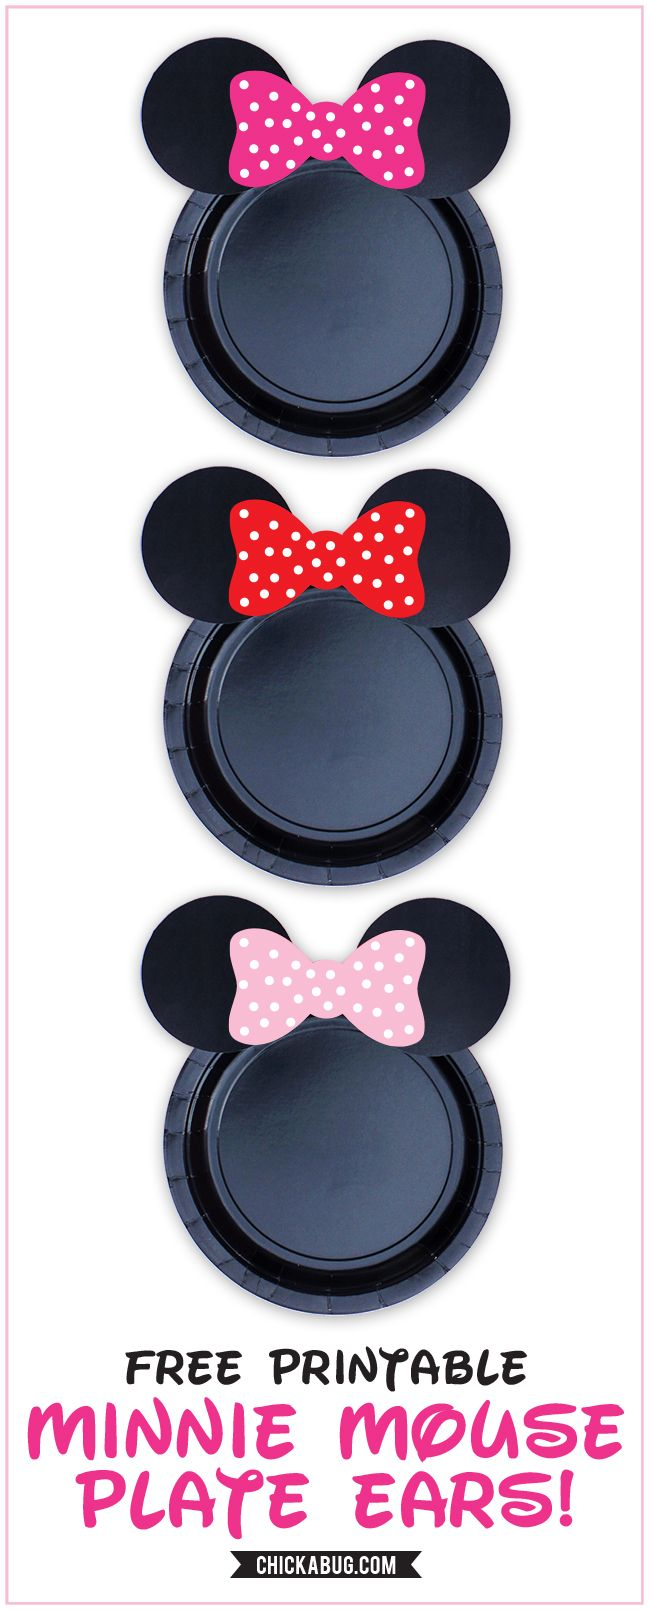 Free printable Minnie Mouse ears for plates - hot pink, baby pink, and red | Chickabug #minniemouse